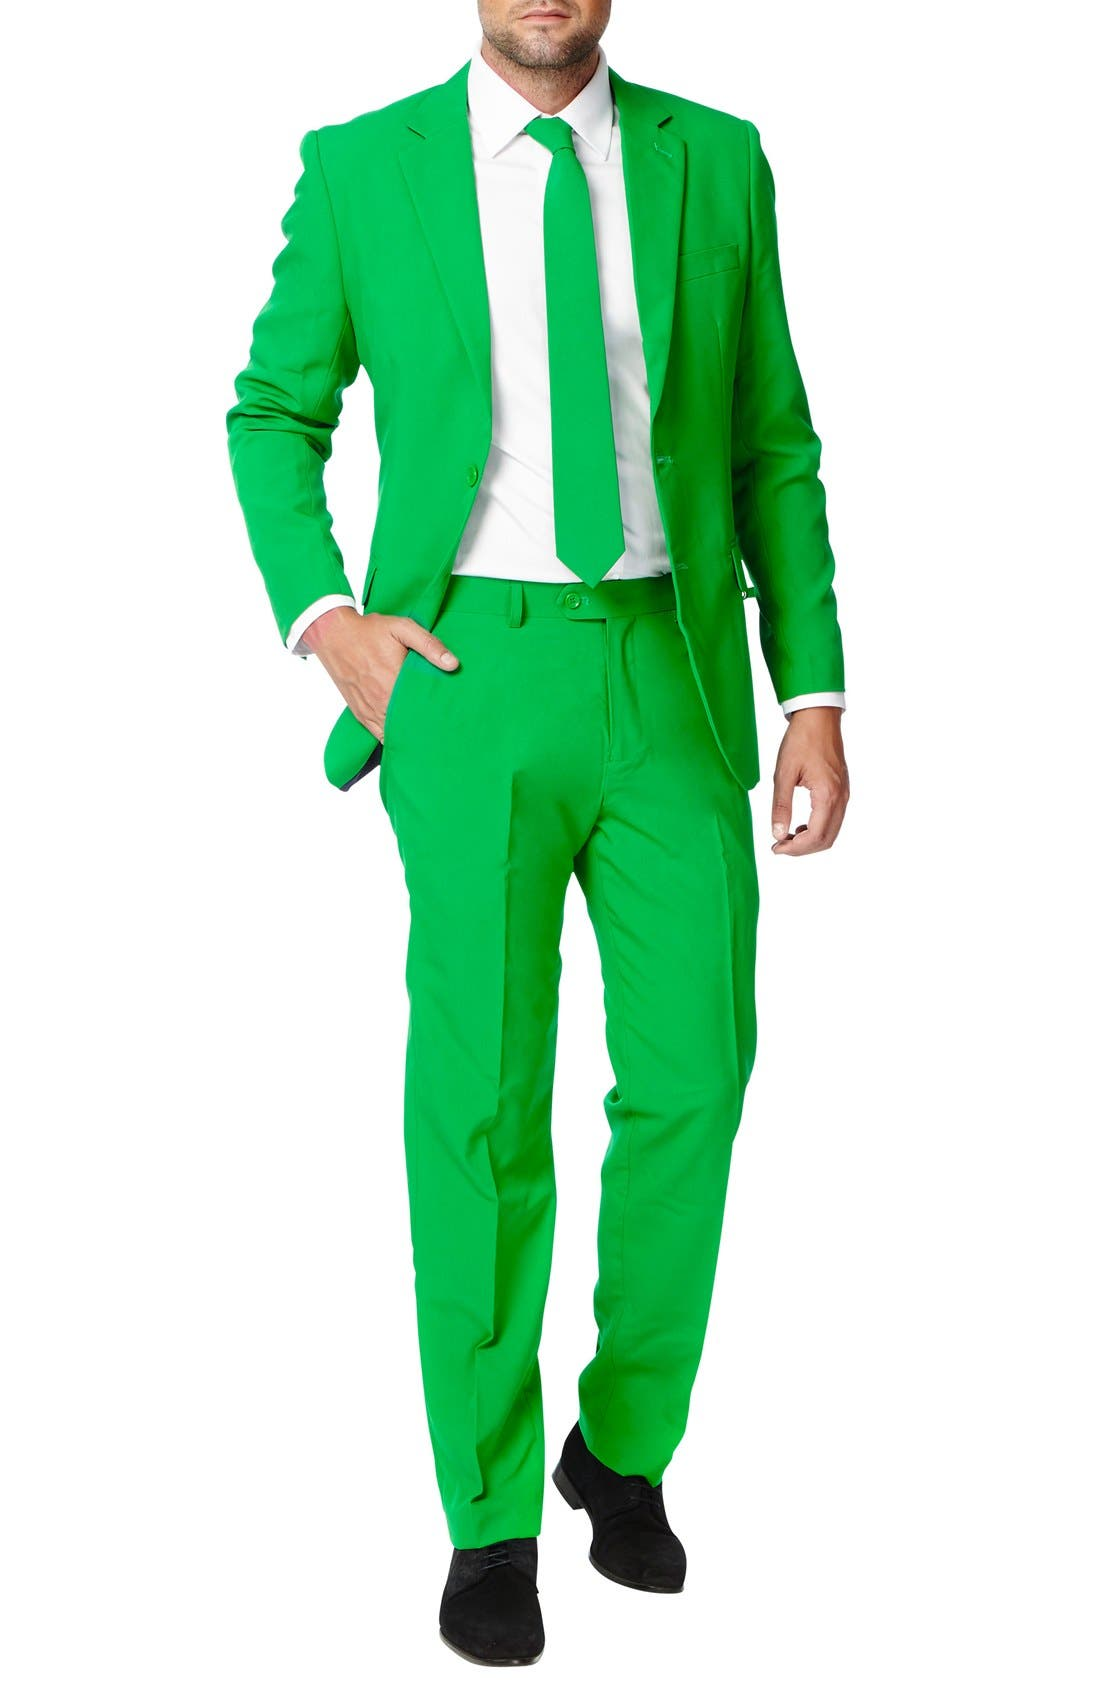 Alternate Image 1 Selected - OppoSuits 'Evergreen' Trim Fit Suit with Tie